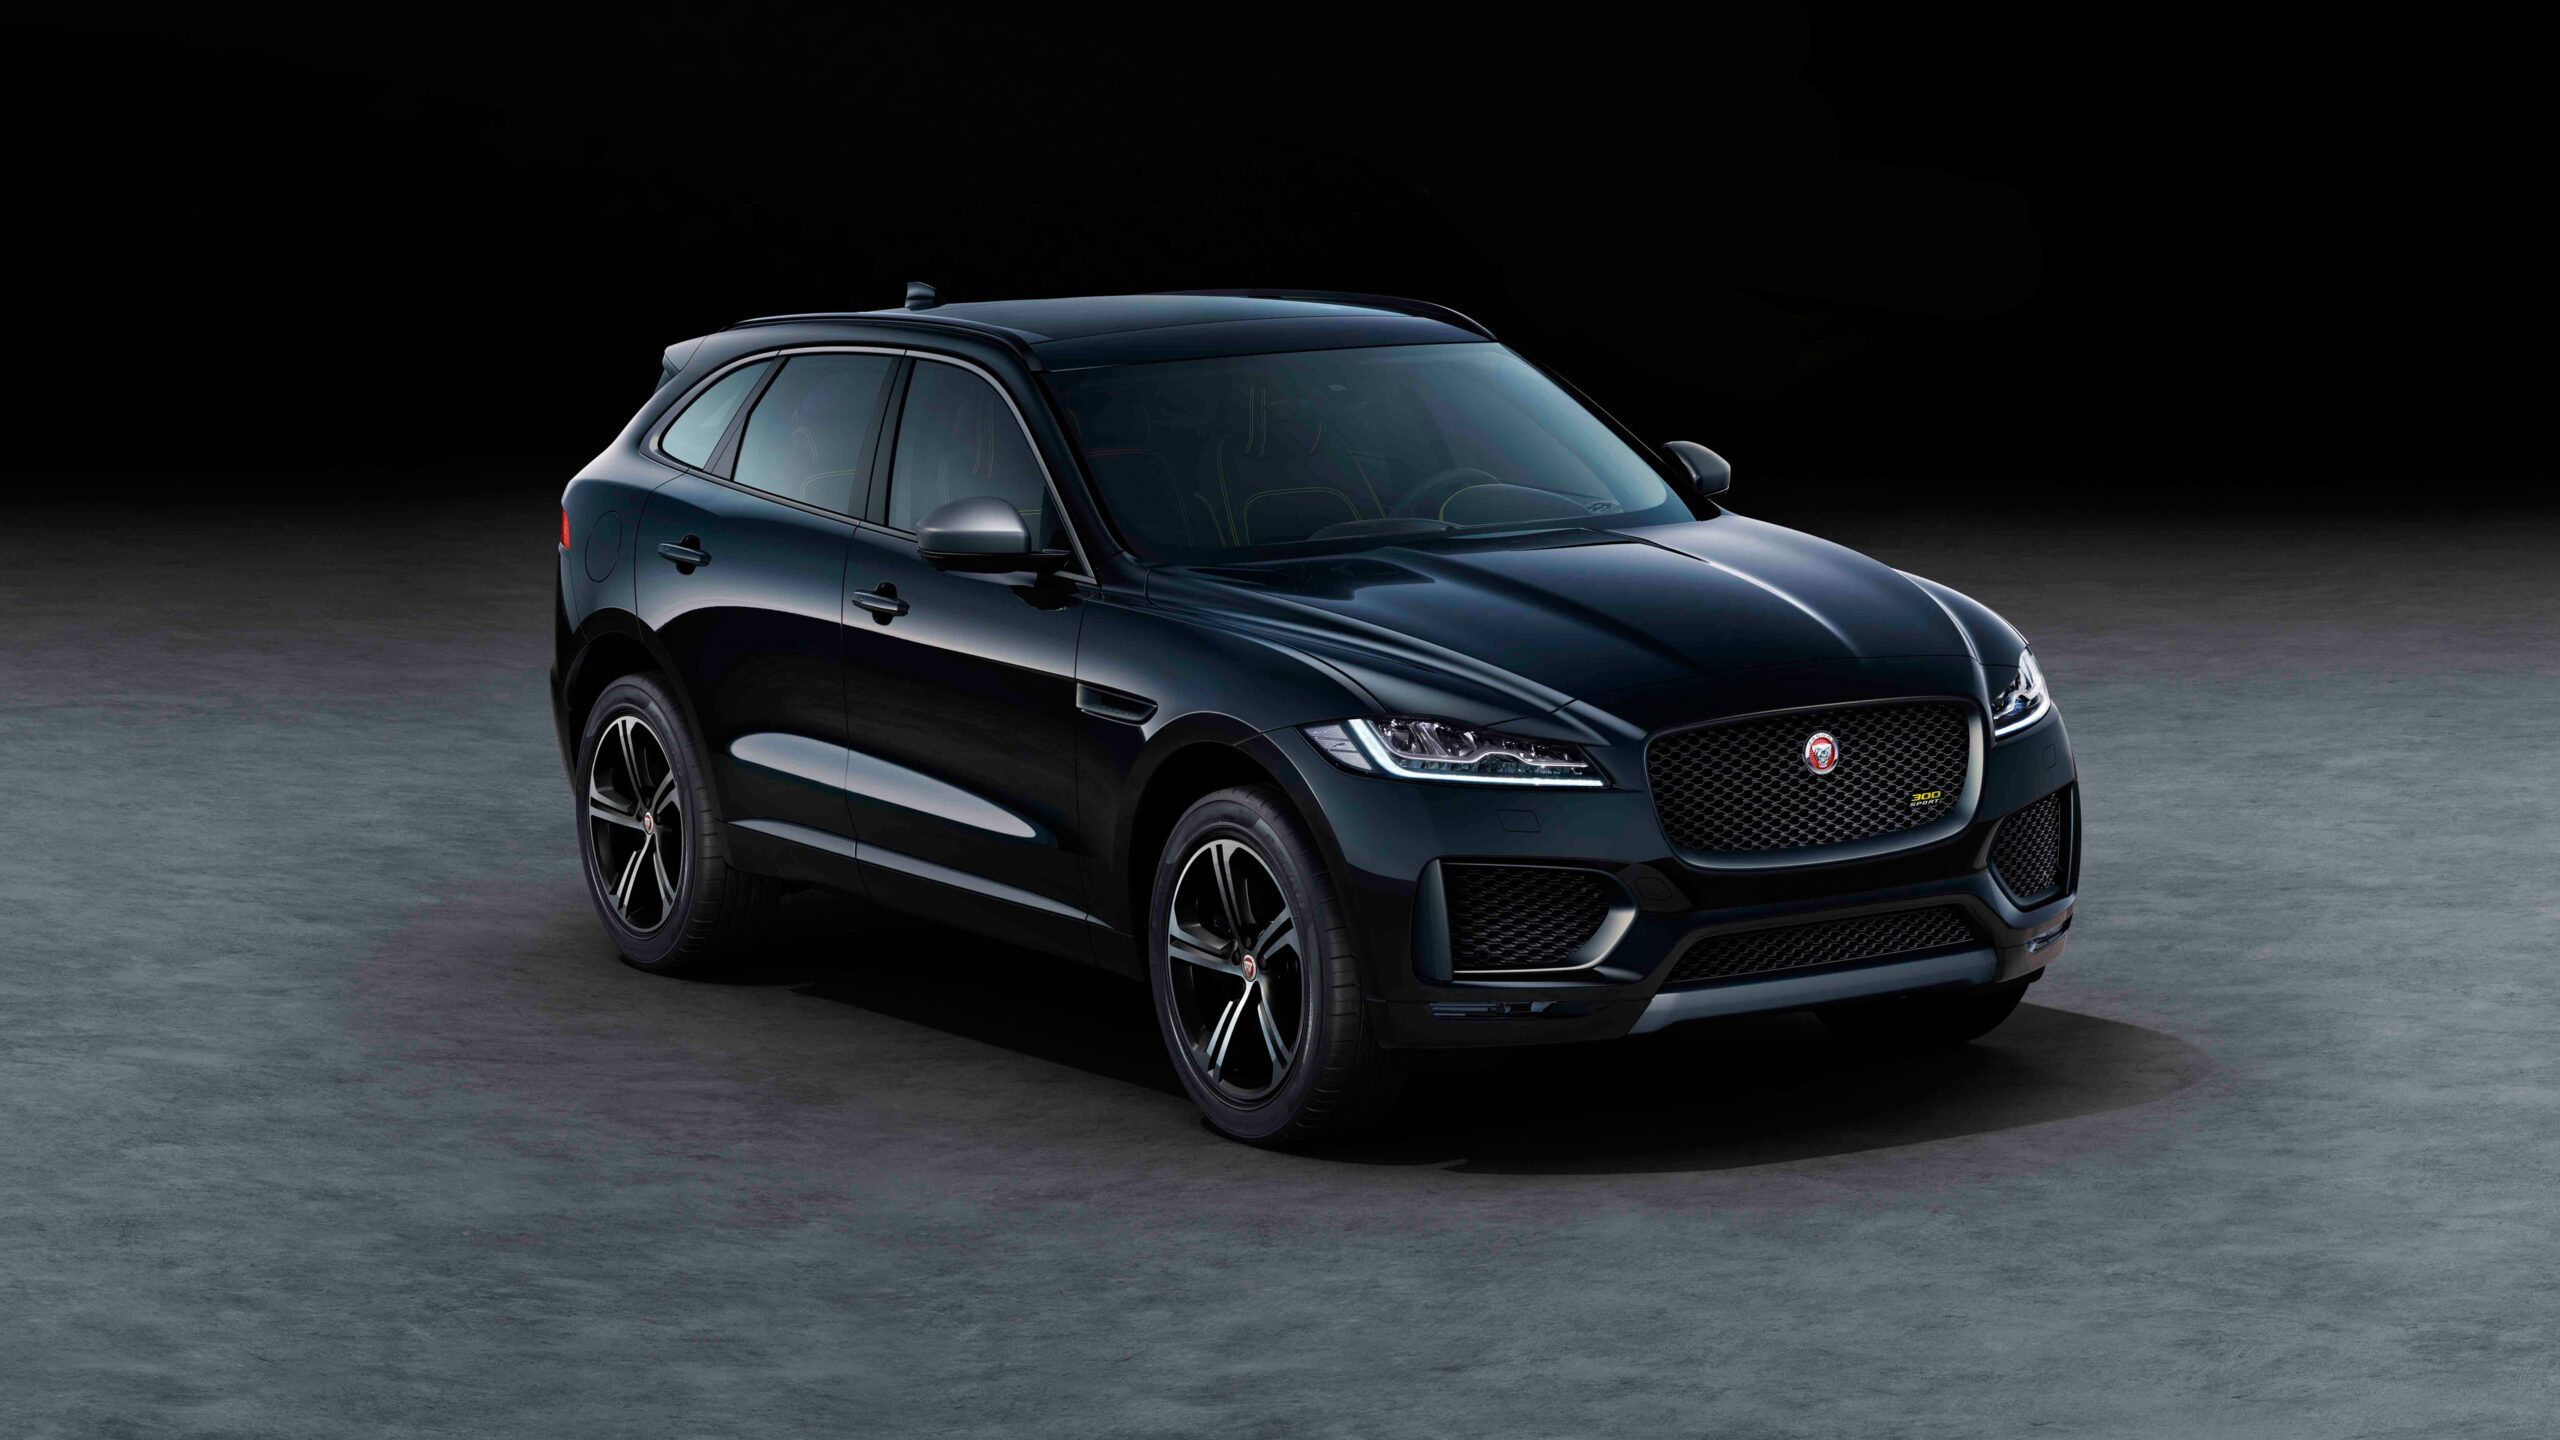 2020 Black Jaguar Suv Picture In 2020 Jaguar Suv Jaguar Suv